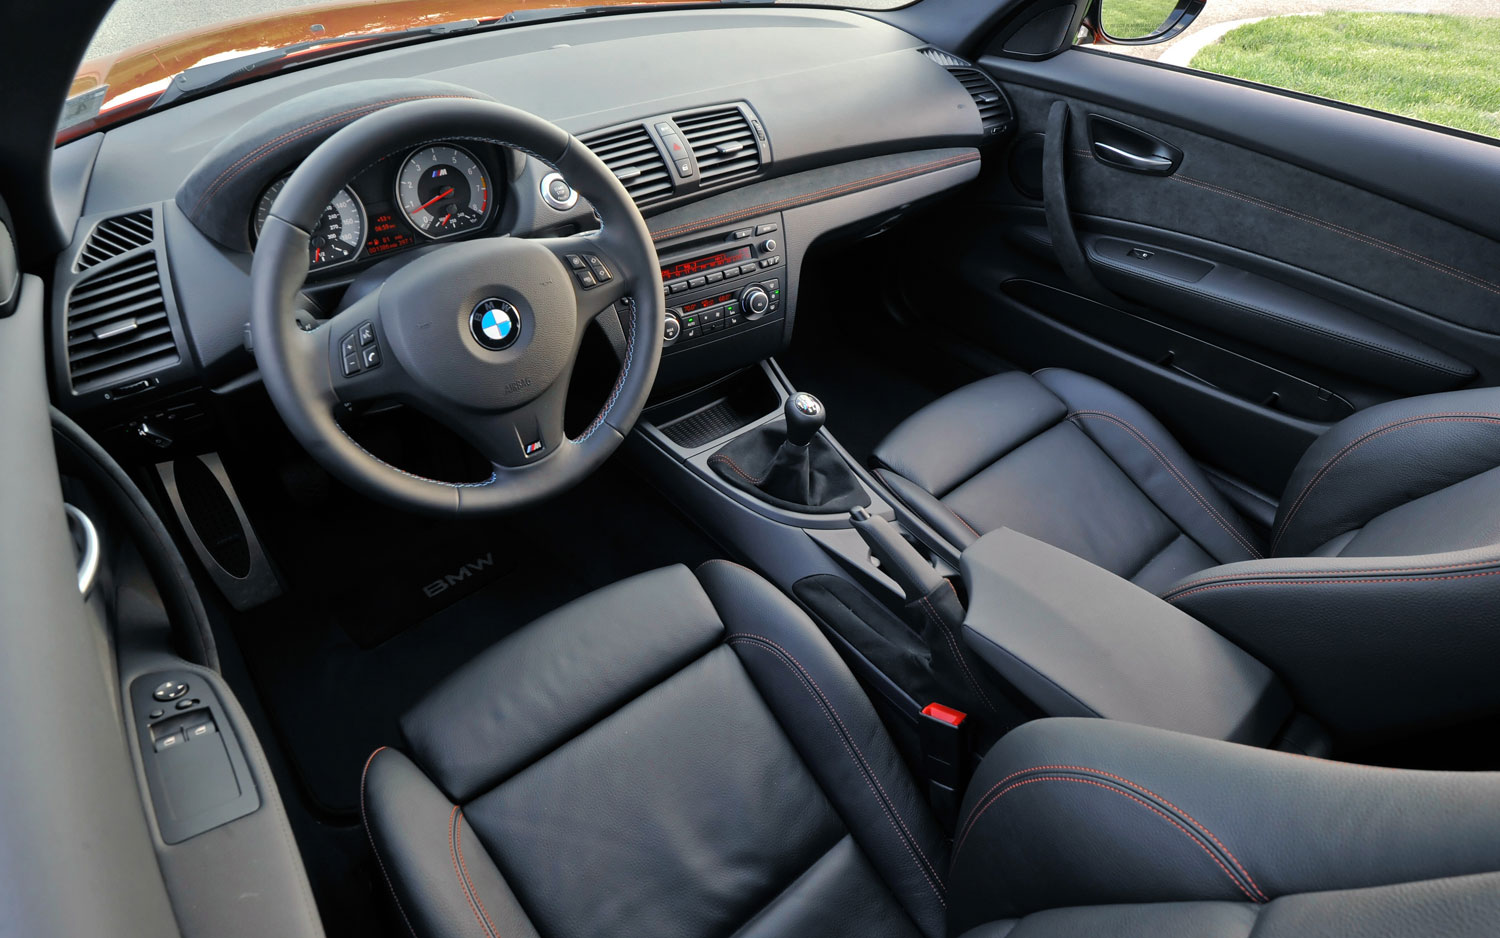 2011 BMW 1-series M coupe - First Test - Automobile Magazine